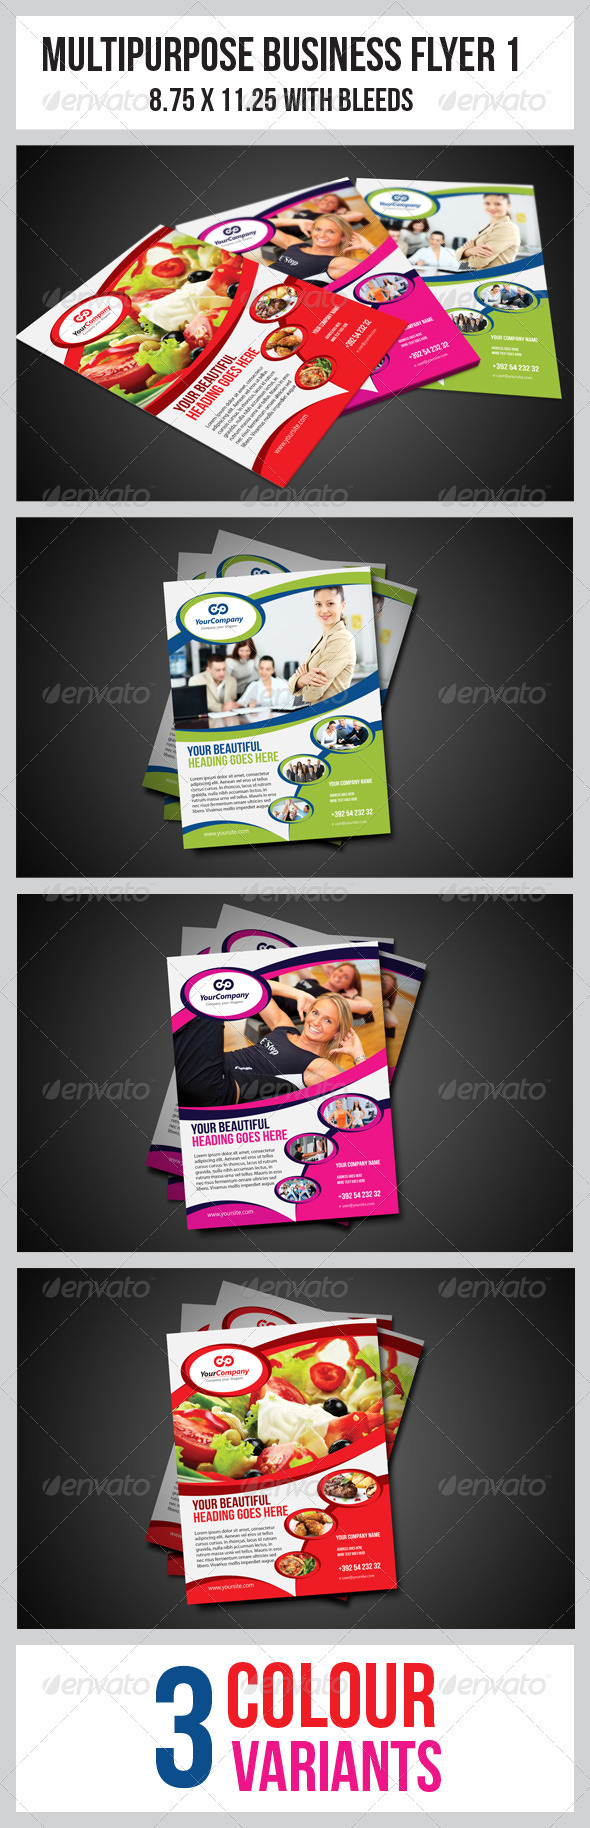 GraphicRiver Multipurpose Business Flyer 1 3522226